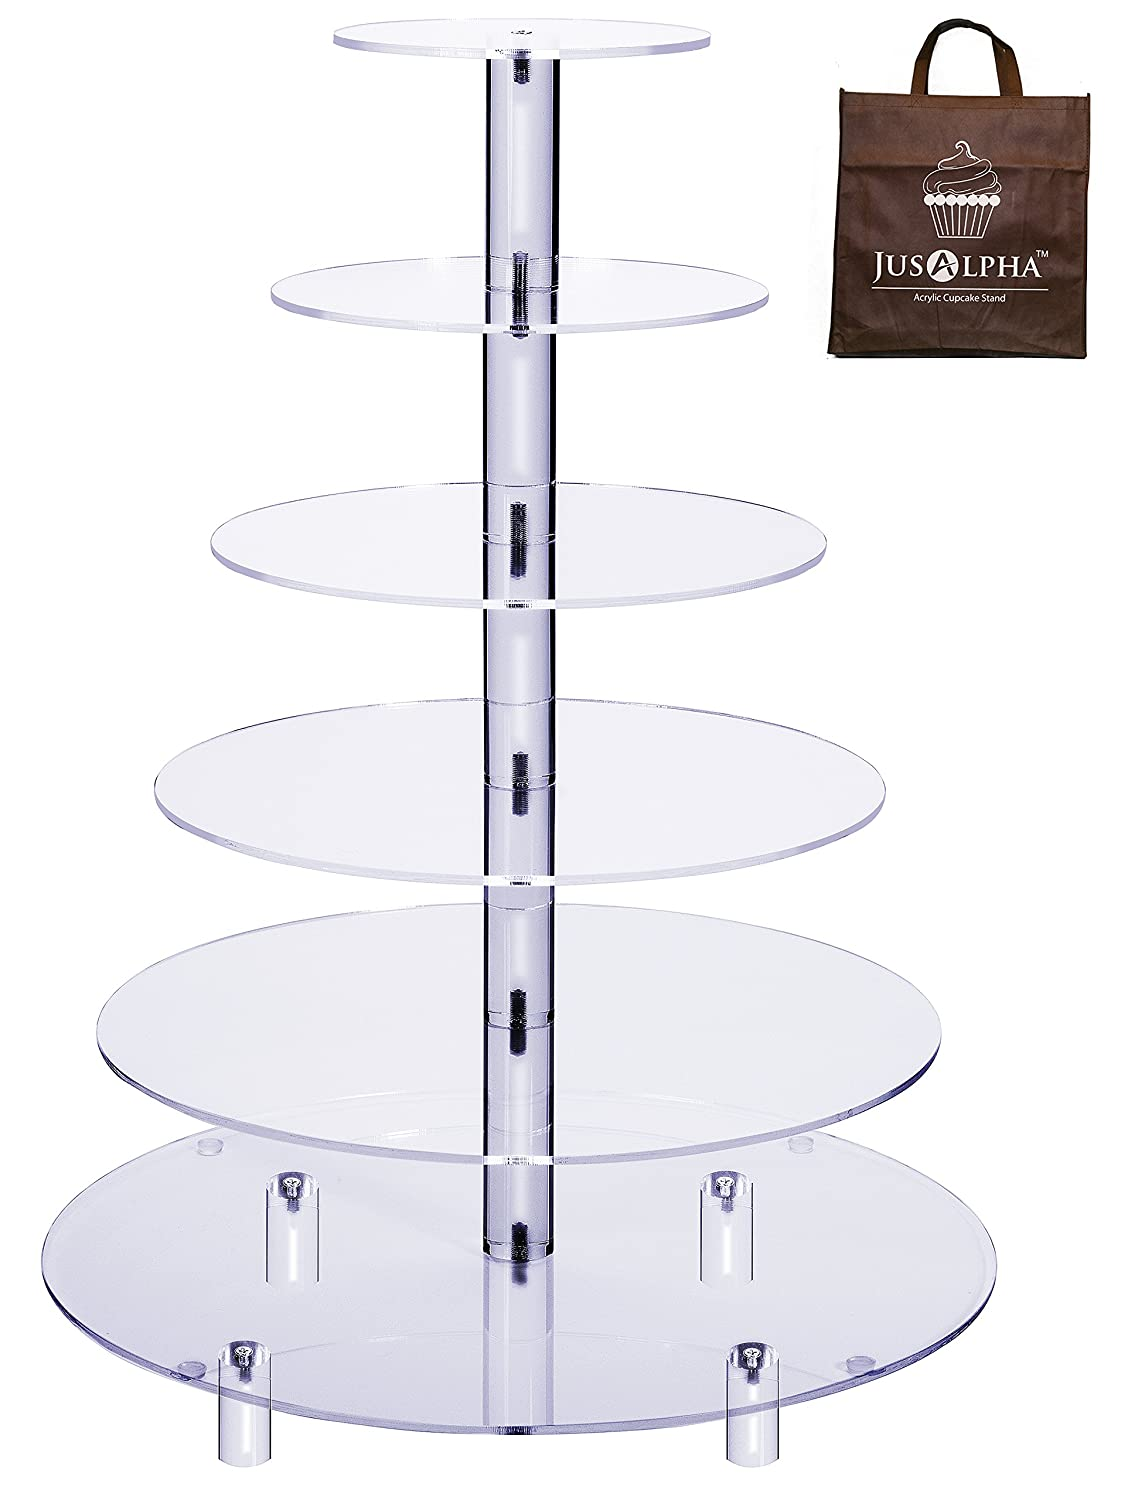 Jusalpha Large 6-Tier Acrylic Glass Round Wedding Cake Stand- Cupcake Stand Tower/ Dessert Stand- Pastry Serving Platter- Food Display Stand (Large With Rod Feet)